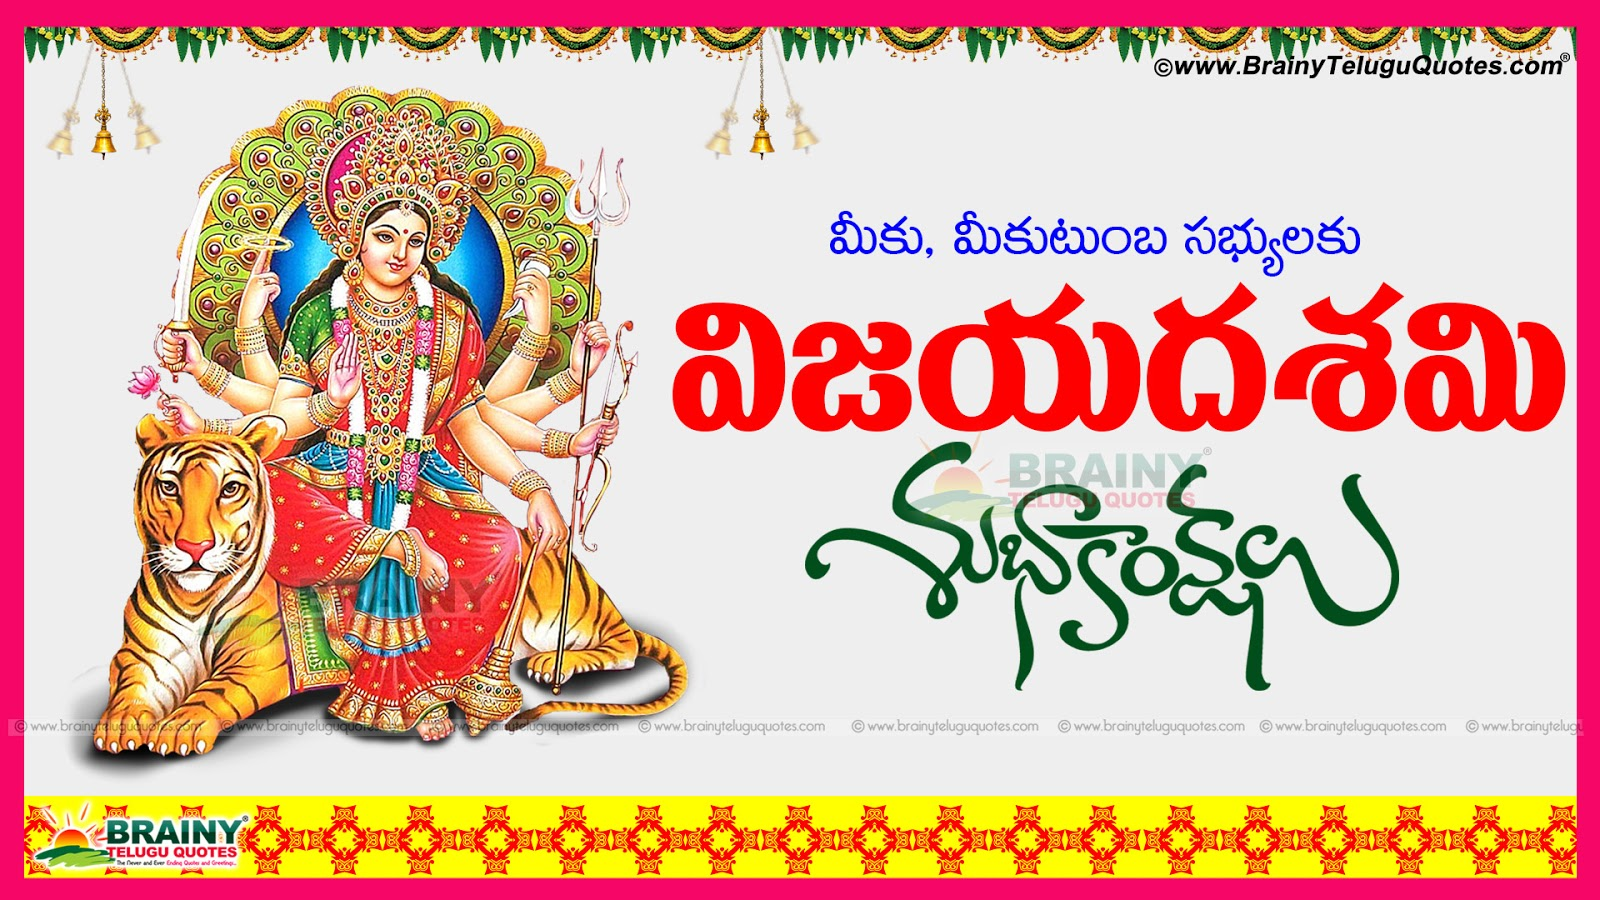 Happy vijayadasami maharnavami dasara telugu quotes wishes happy vijayadasami maharnavami dasara telugu quotes wishes m4hsunfo